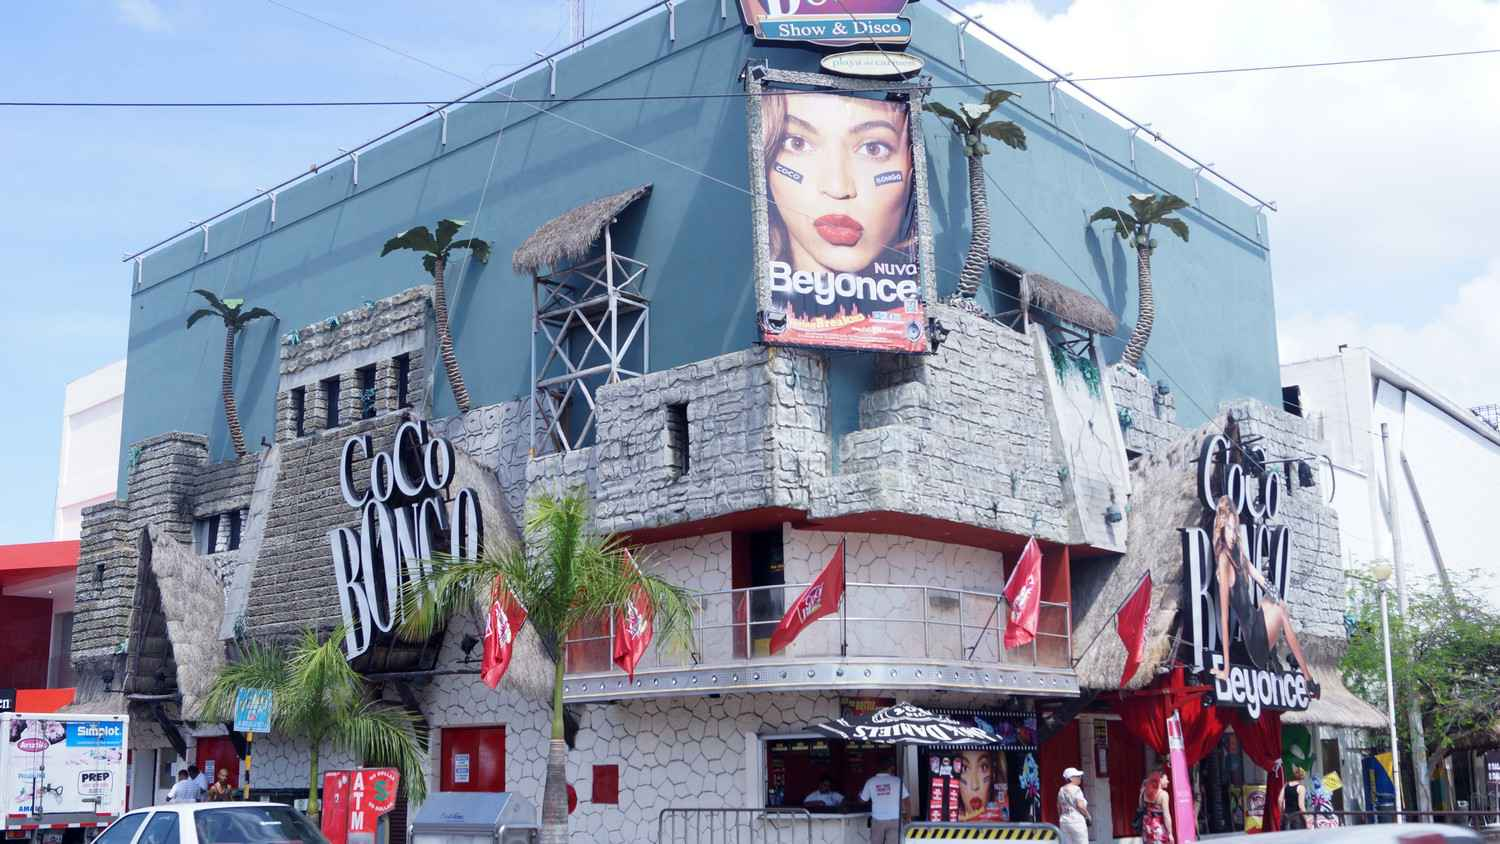 The Coco Bongo club featuring a Beyonce look-alike.